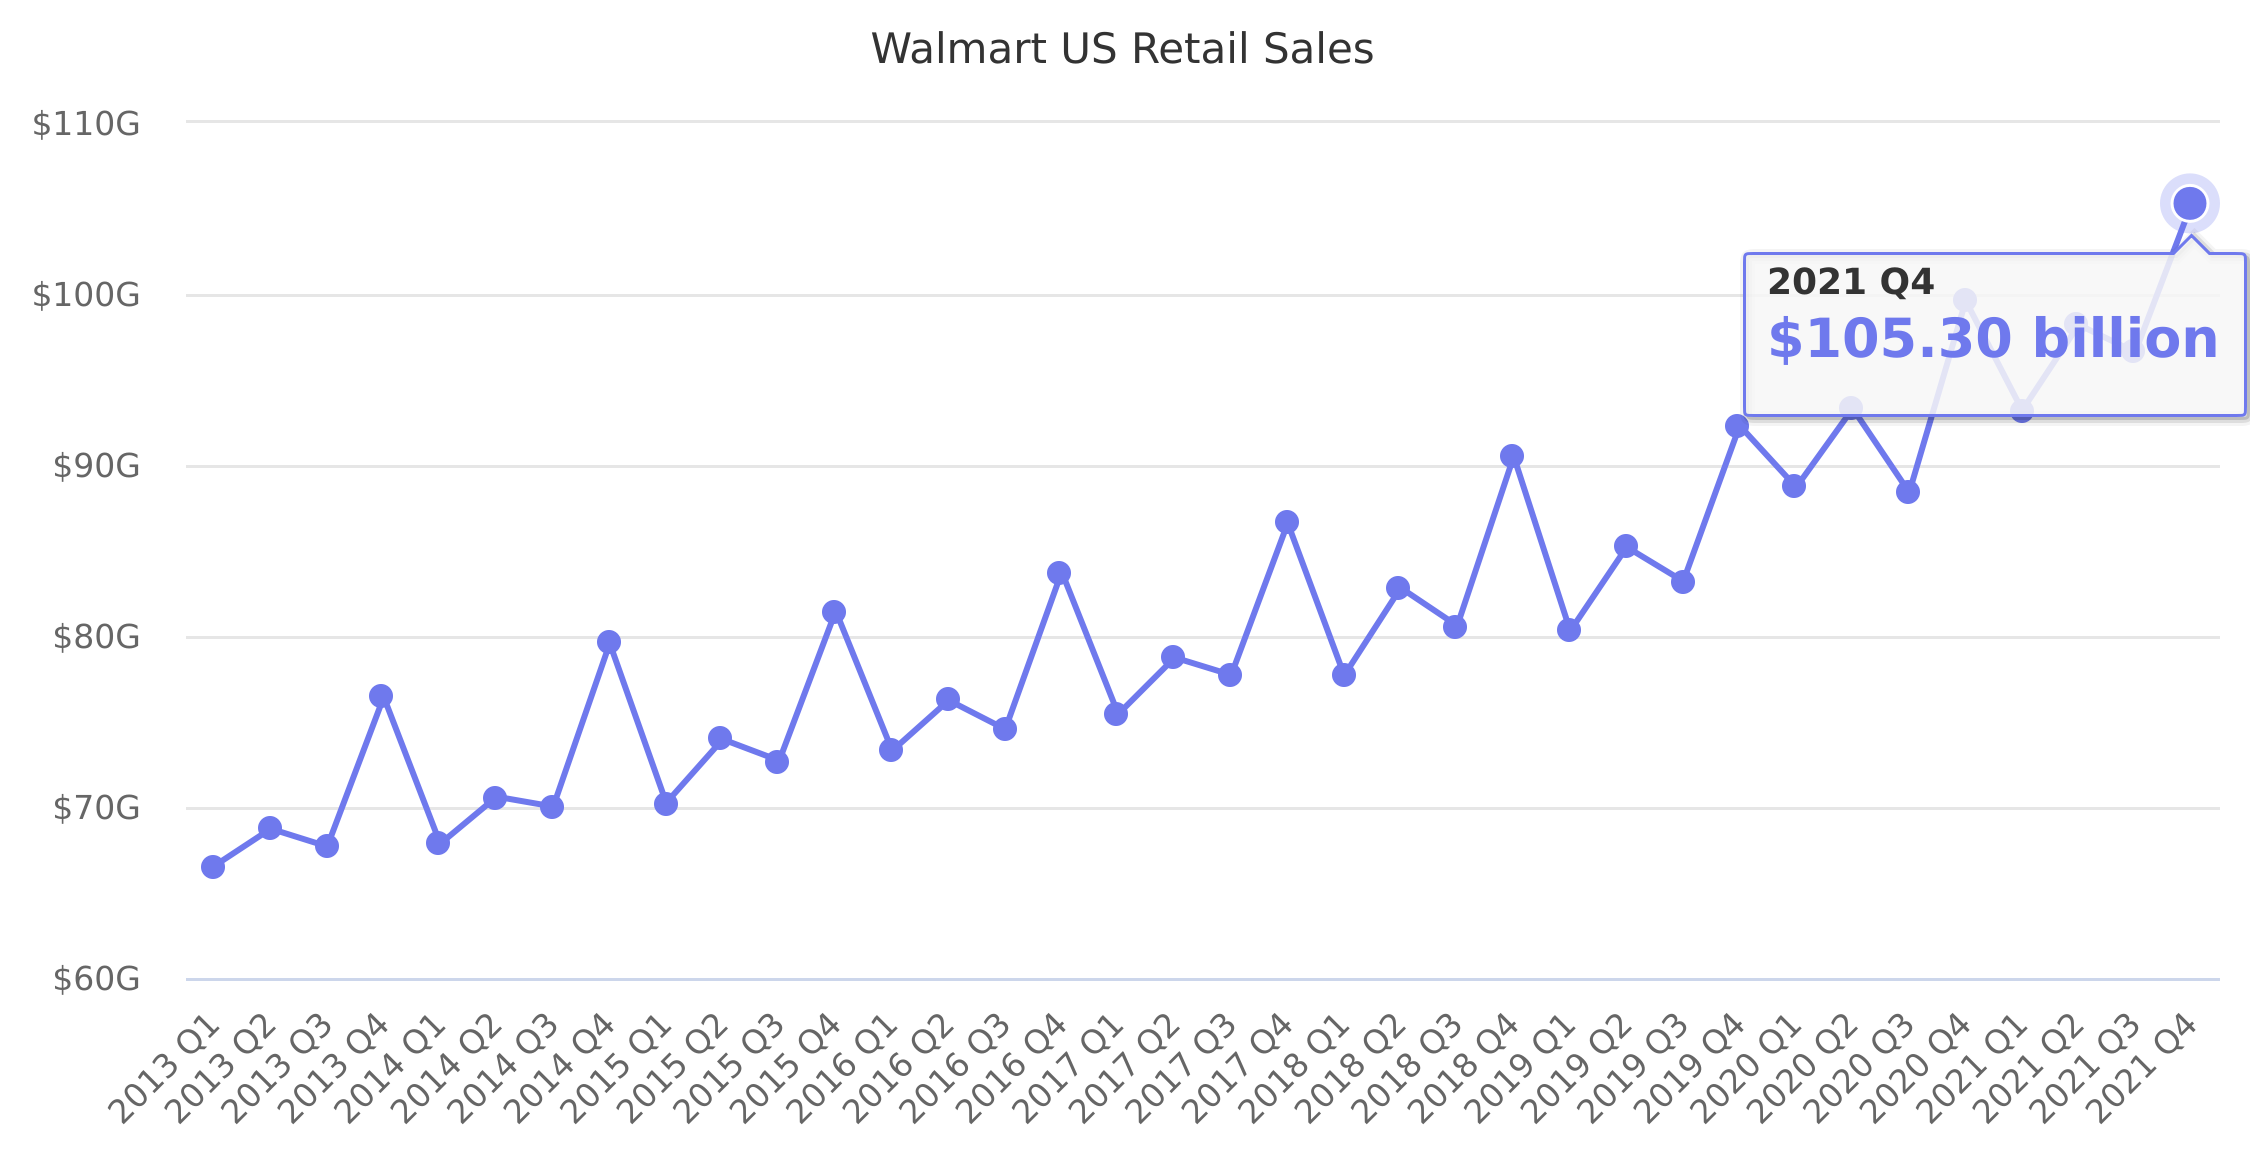 Walmart US Retail Sales 2013-2017